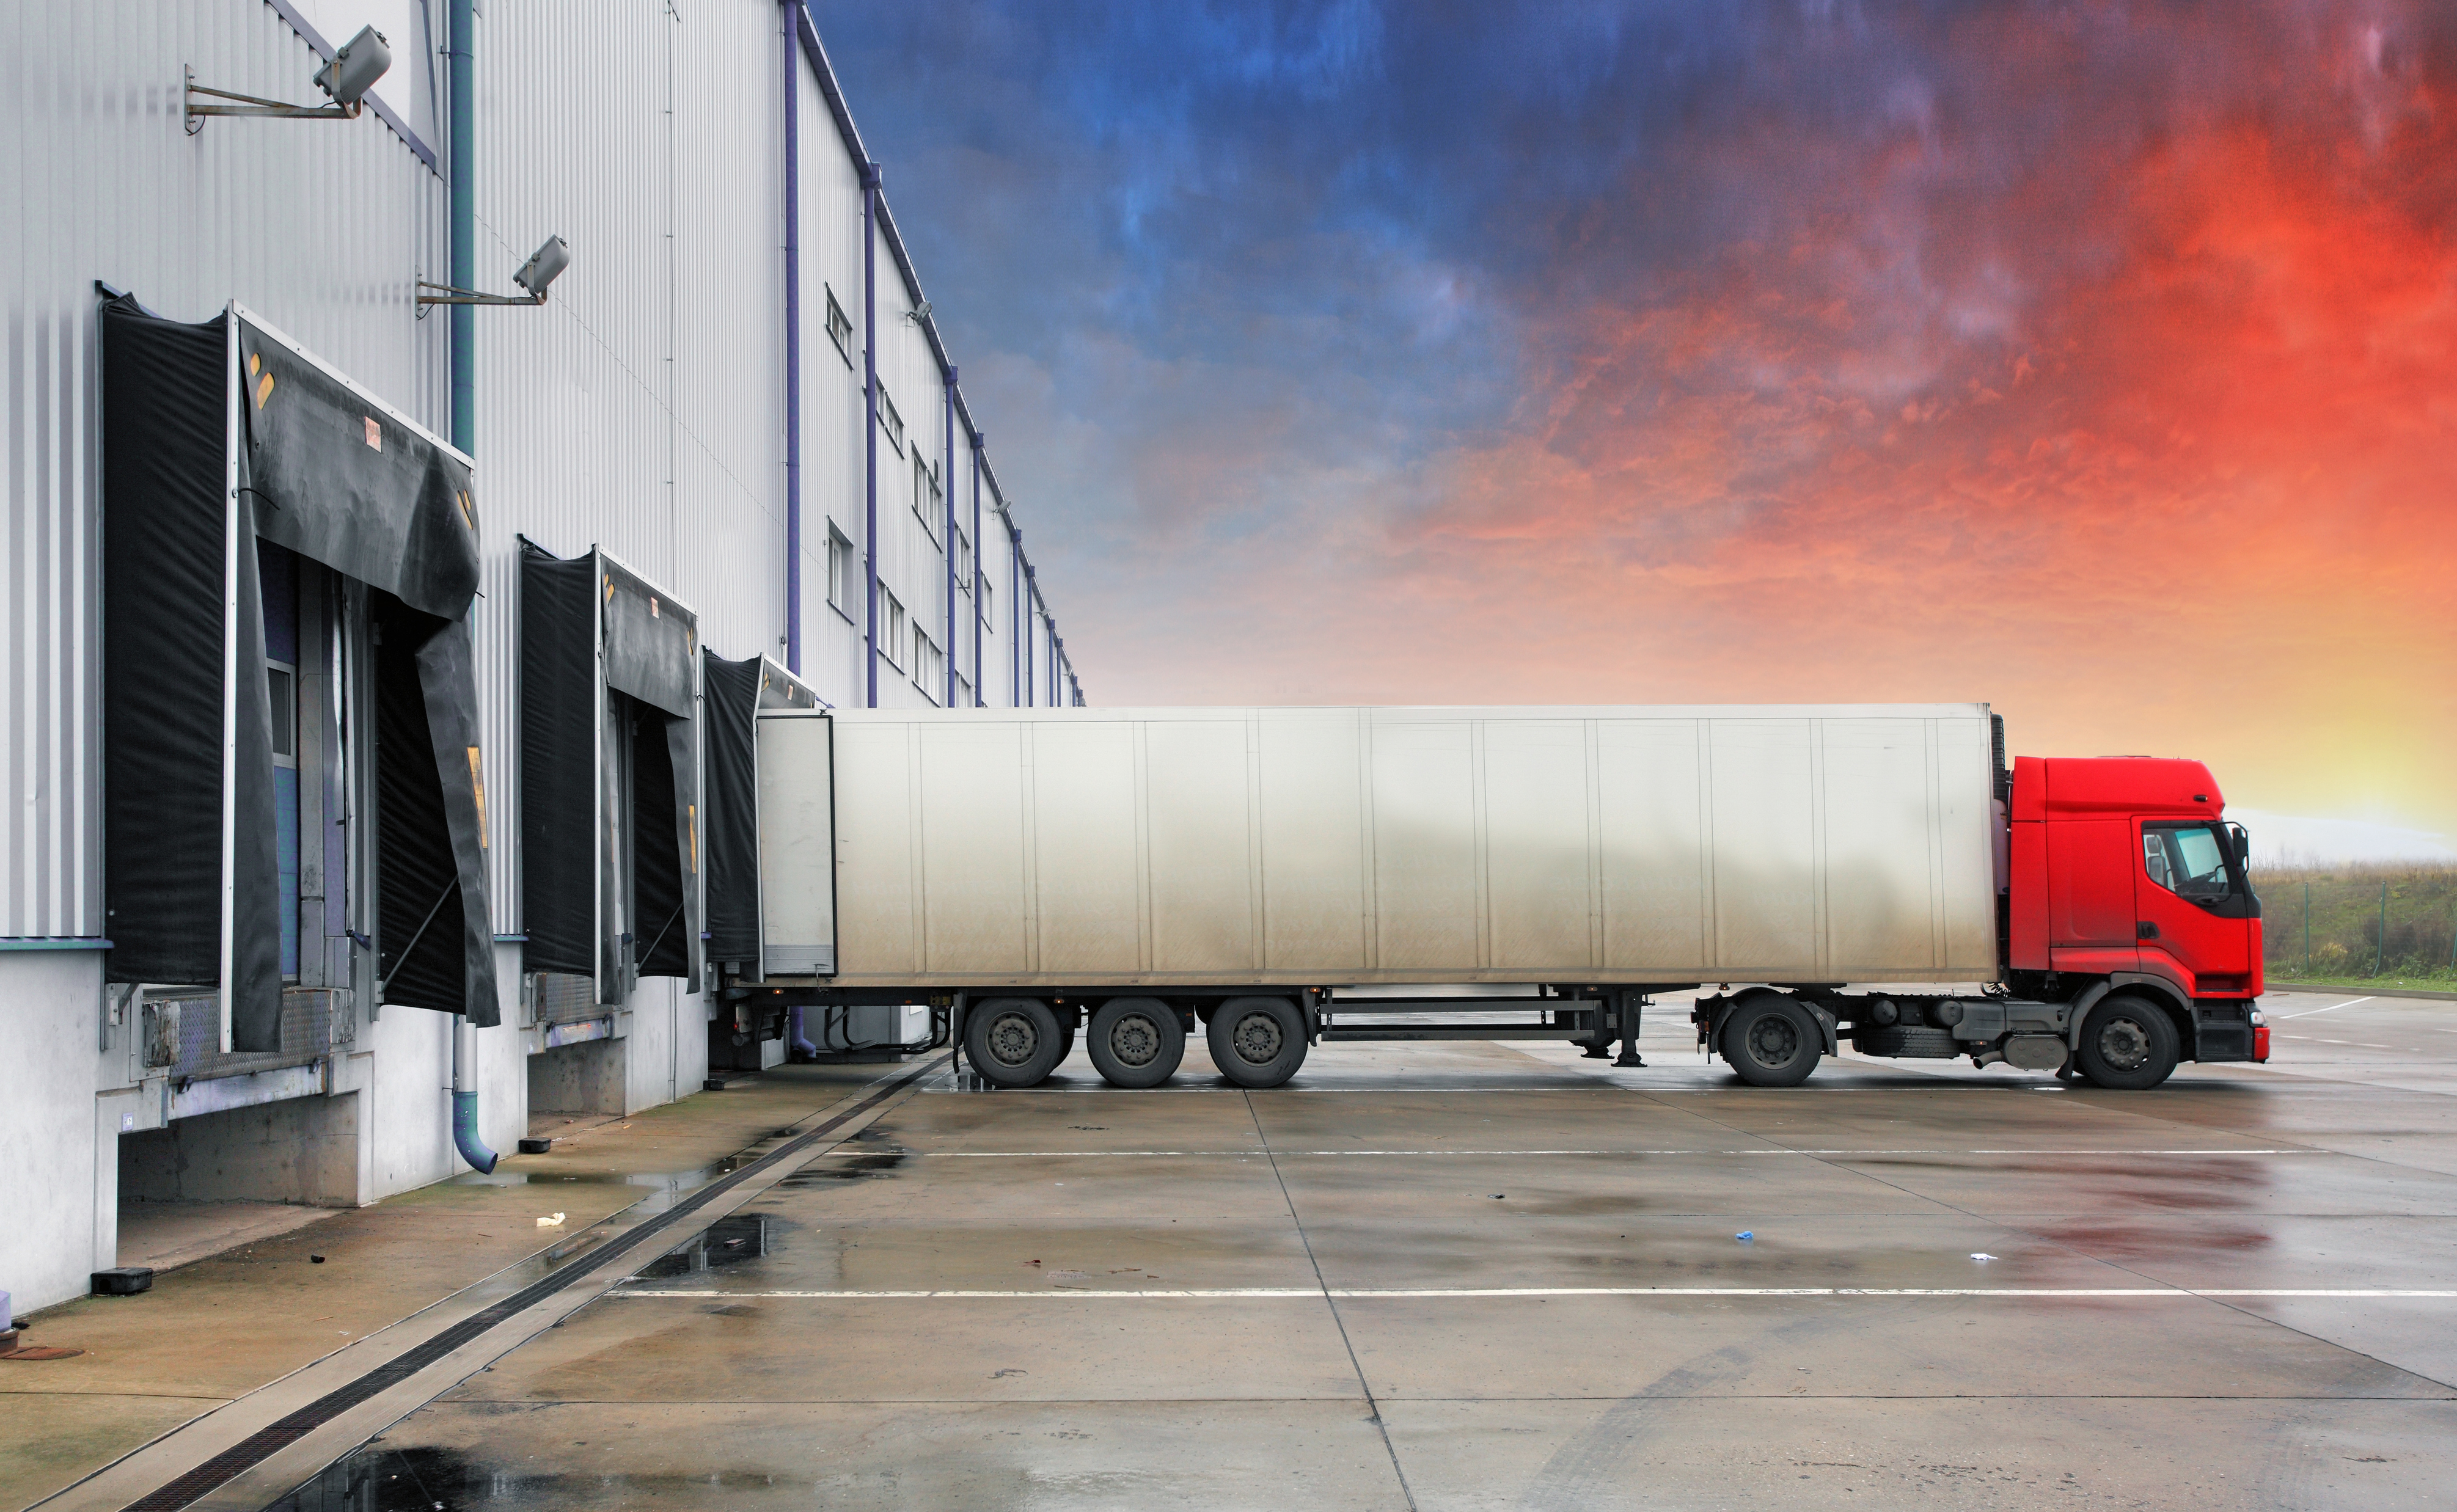 Truck departure schedule usa and canada